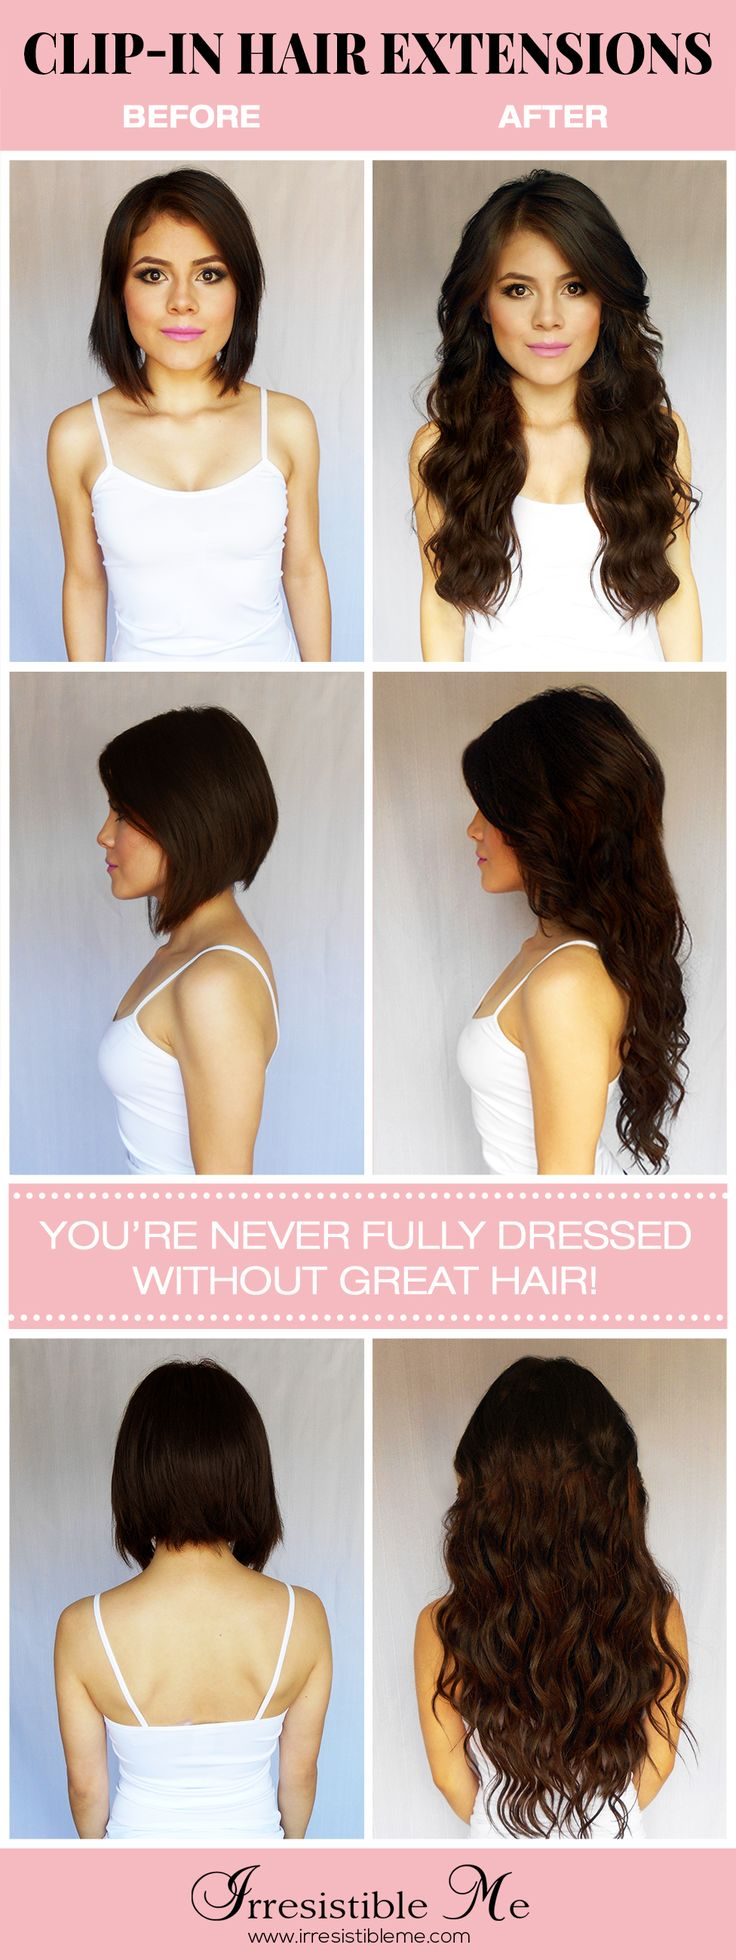 best 25+ clip in hair extensions ideas on pinterest | hair